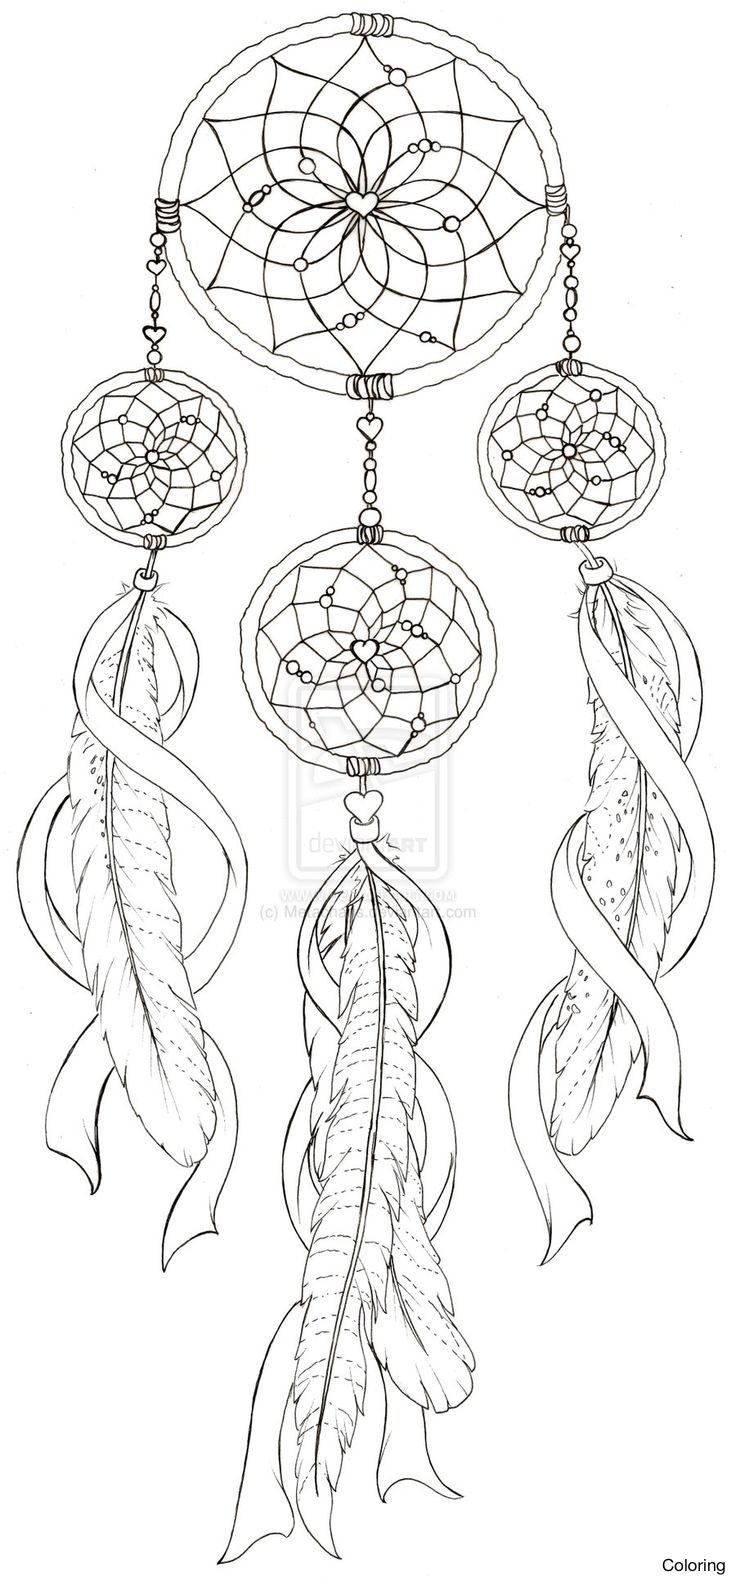 736x1581 Coloring Page Dreamcatcher Keys Pages To Print And Color